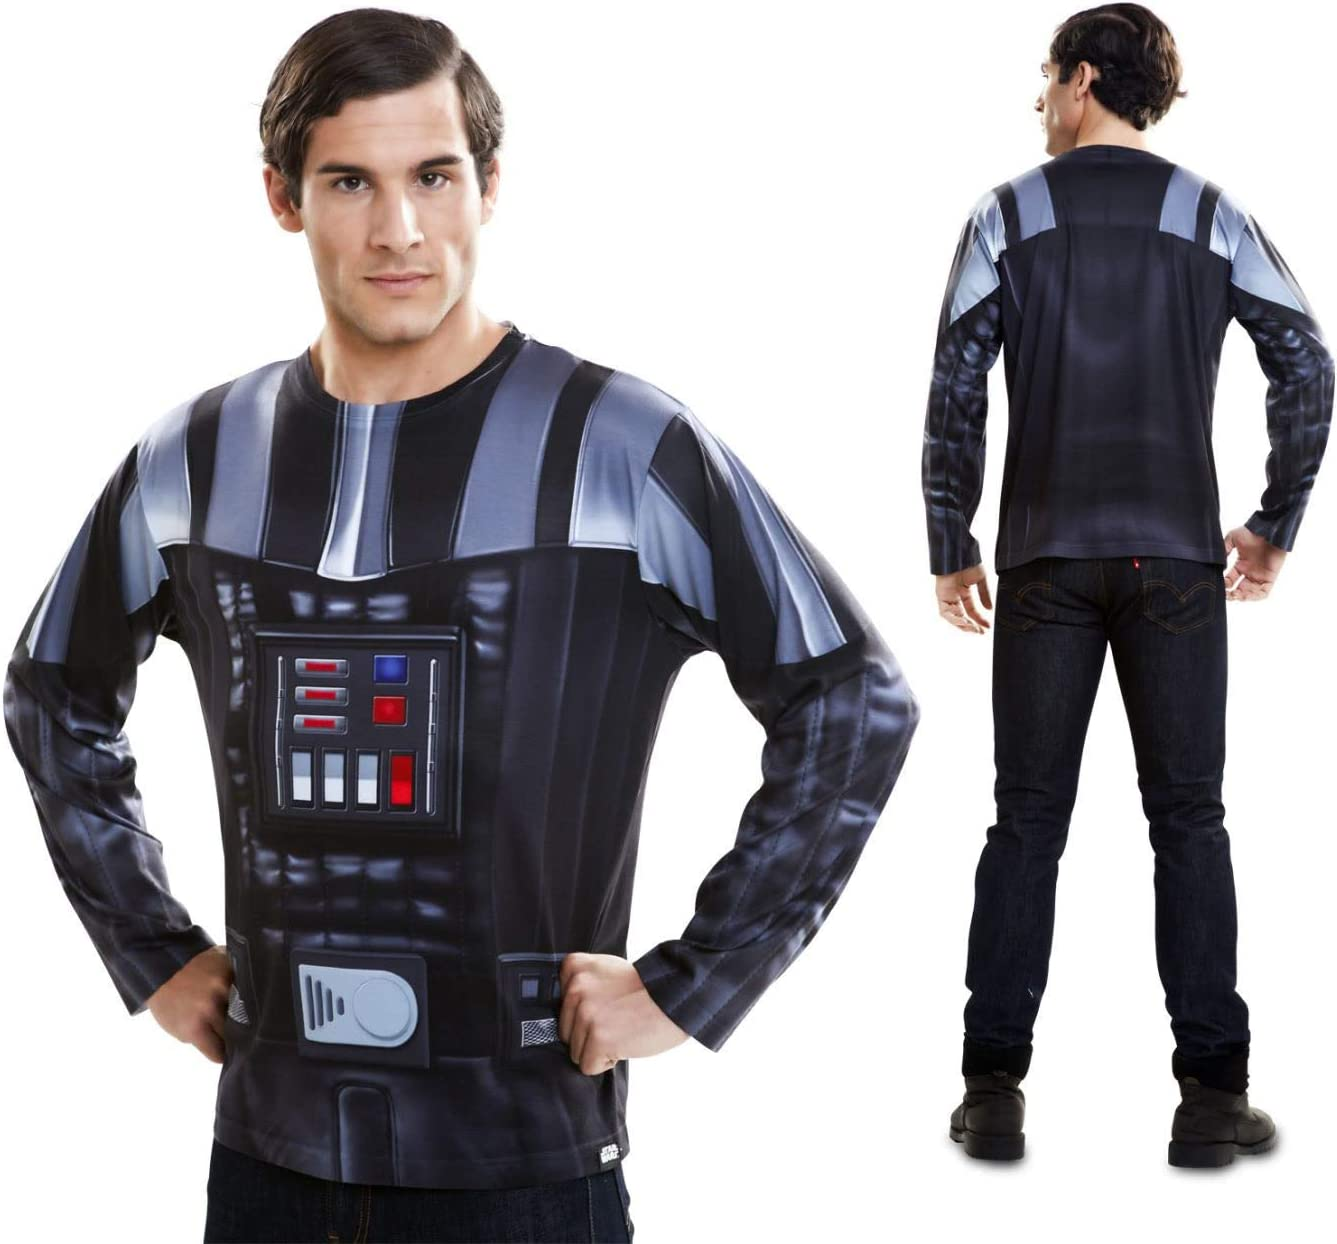 Disfraz Camiseta de Star Wars Darth Vader Original de Carnaval ...